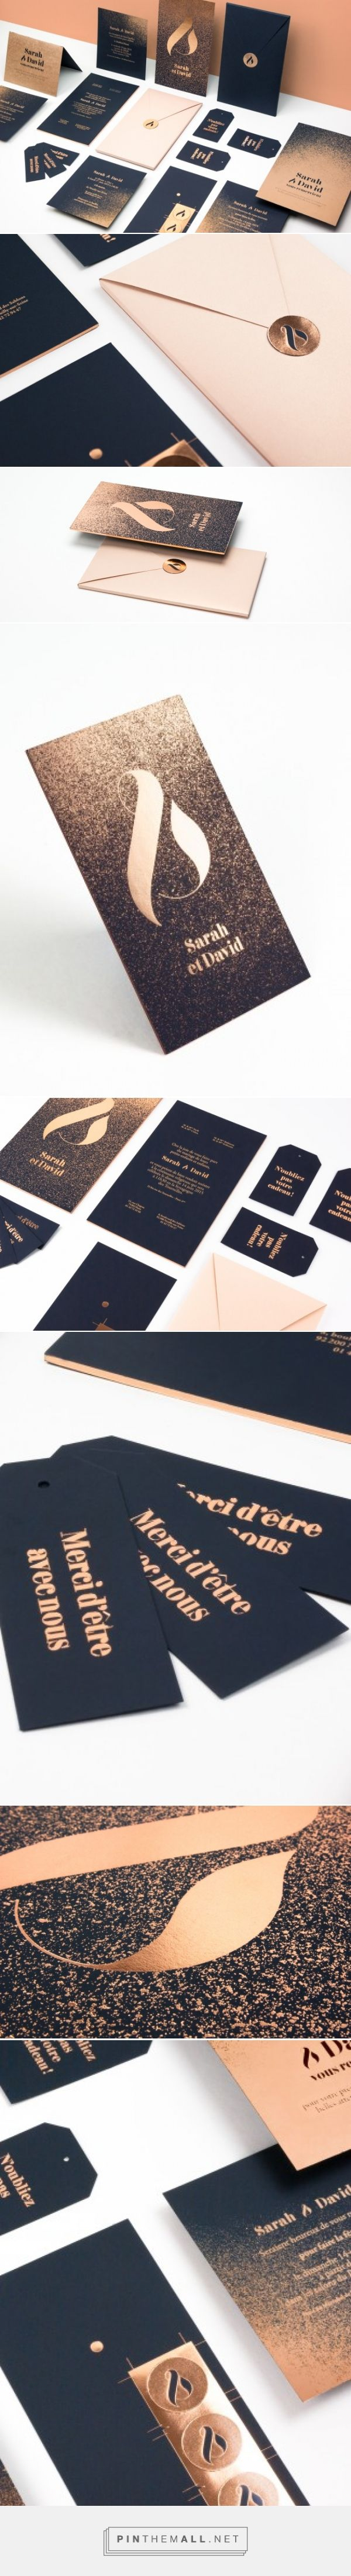 Gorgeous design / invites / graphic design //D2